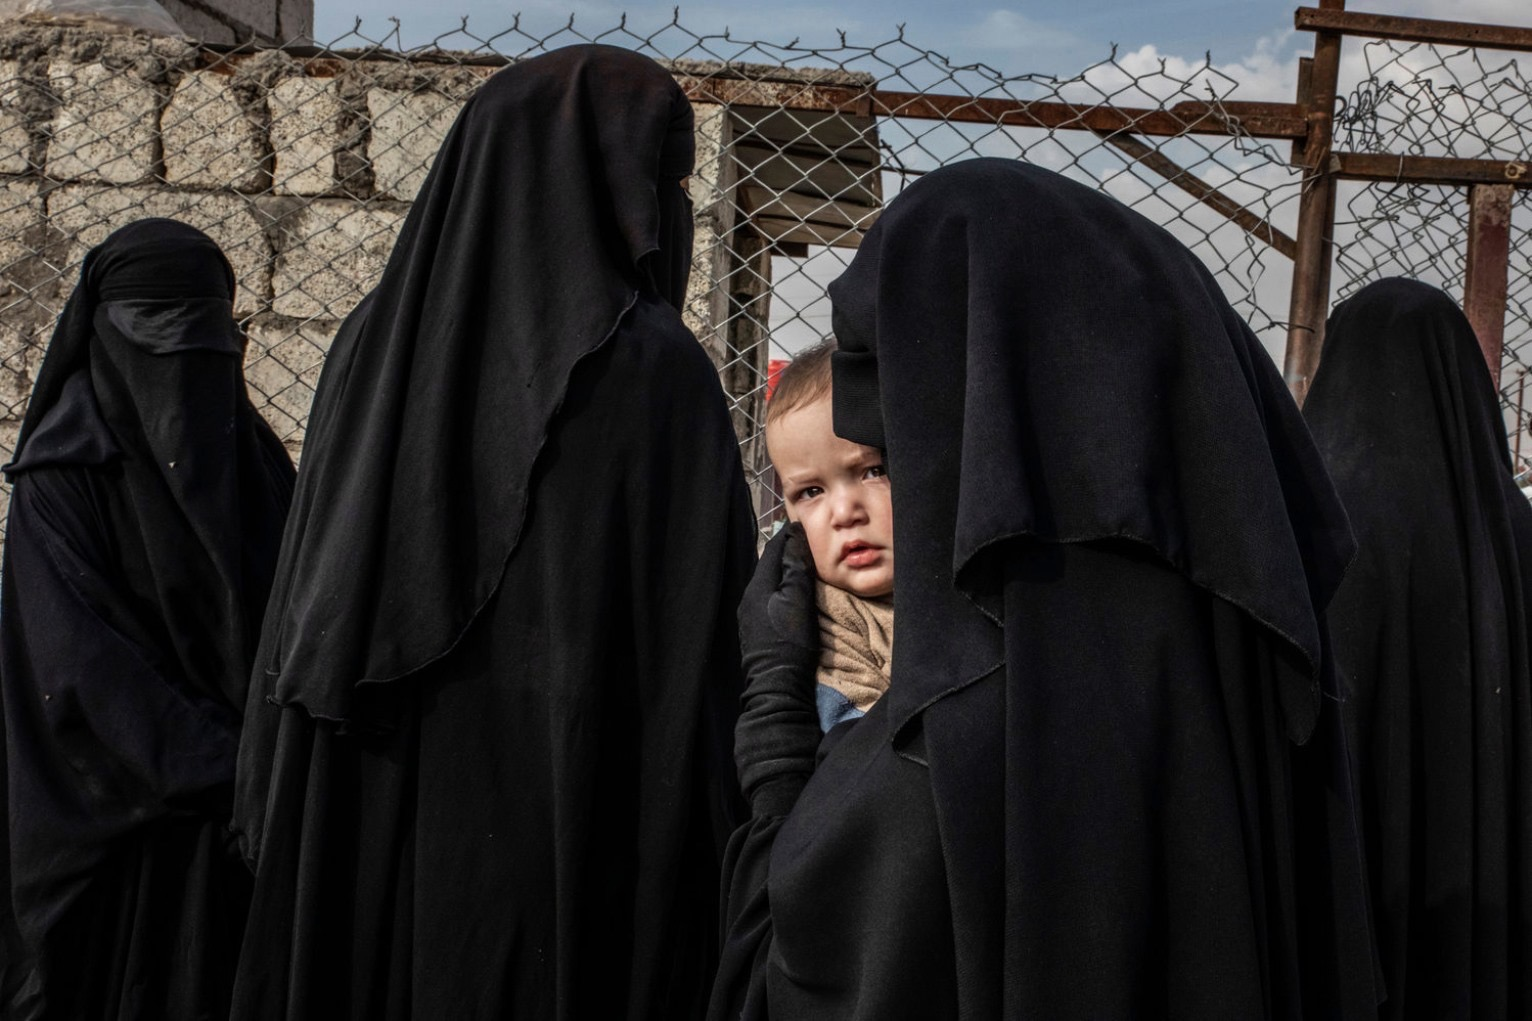 Il siciliano Alessio Mamo di nuovo tra i finalisti del premio World press photo 2020